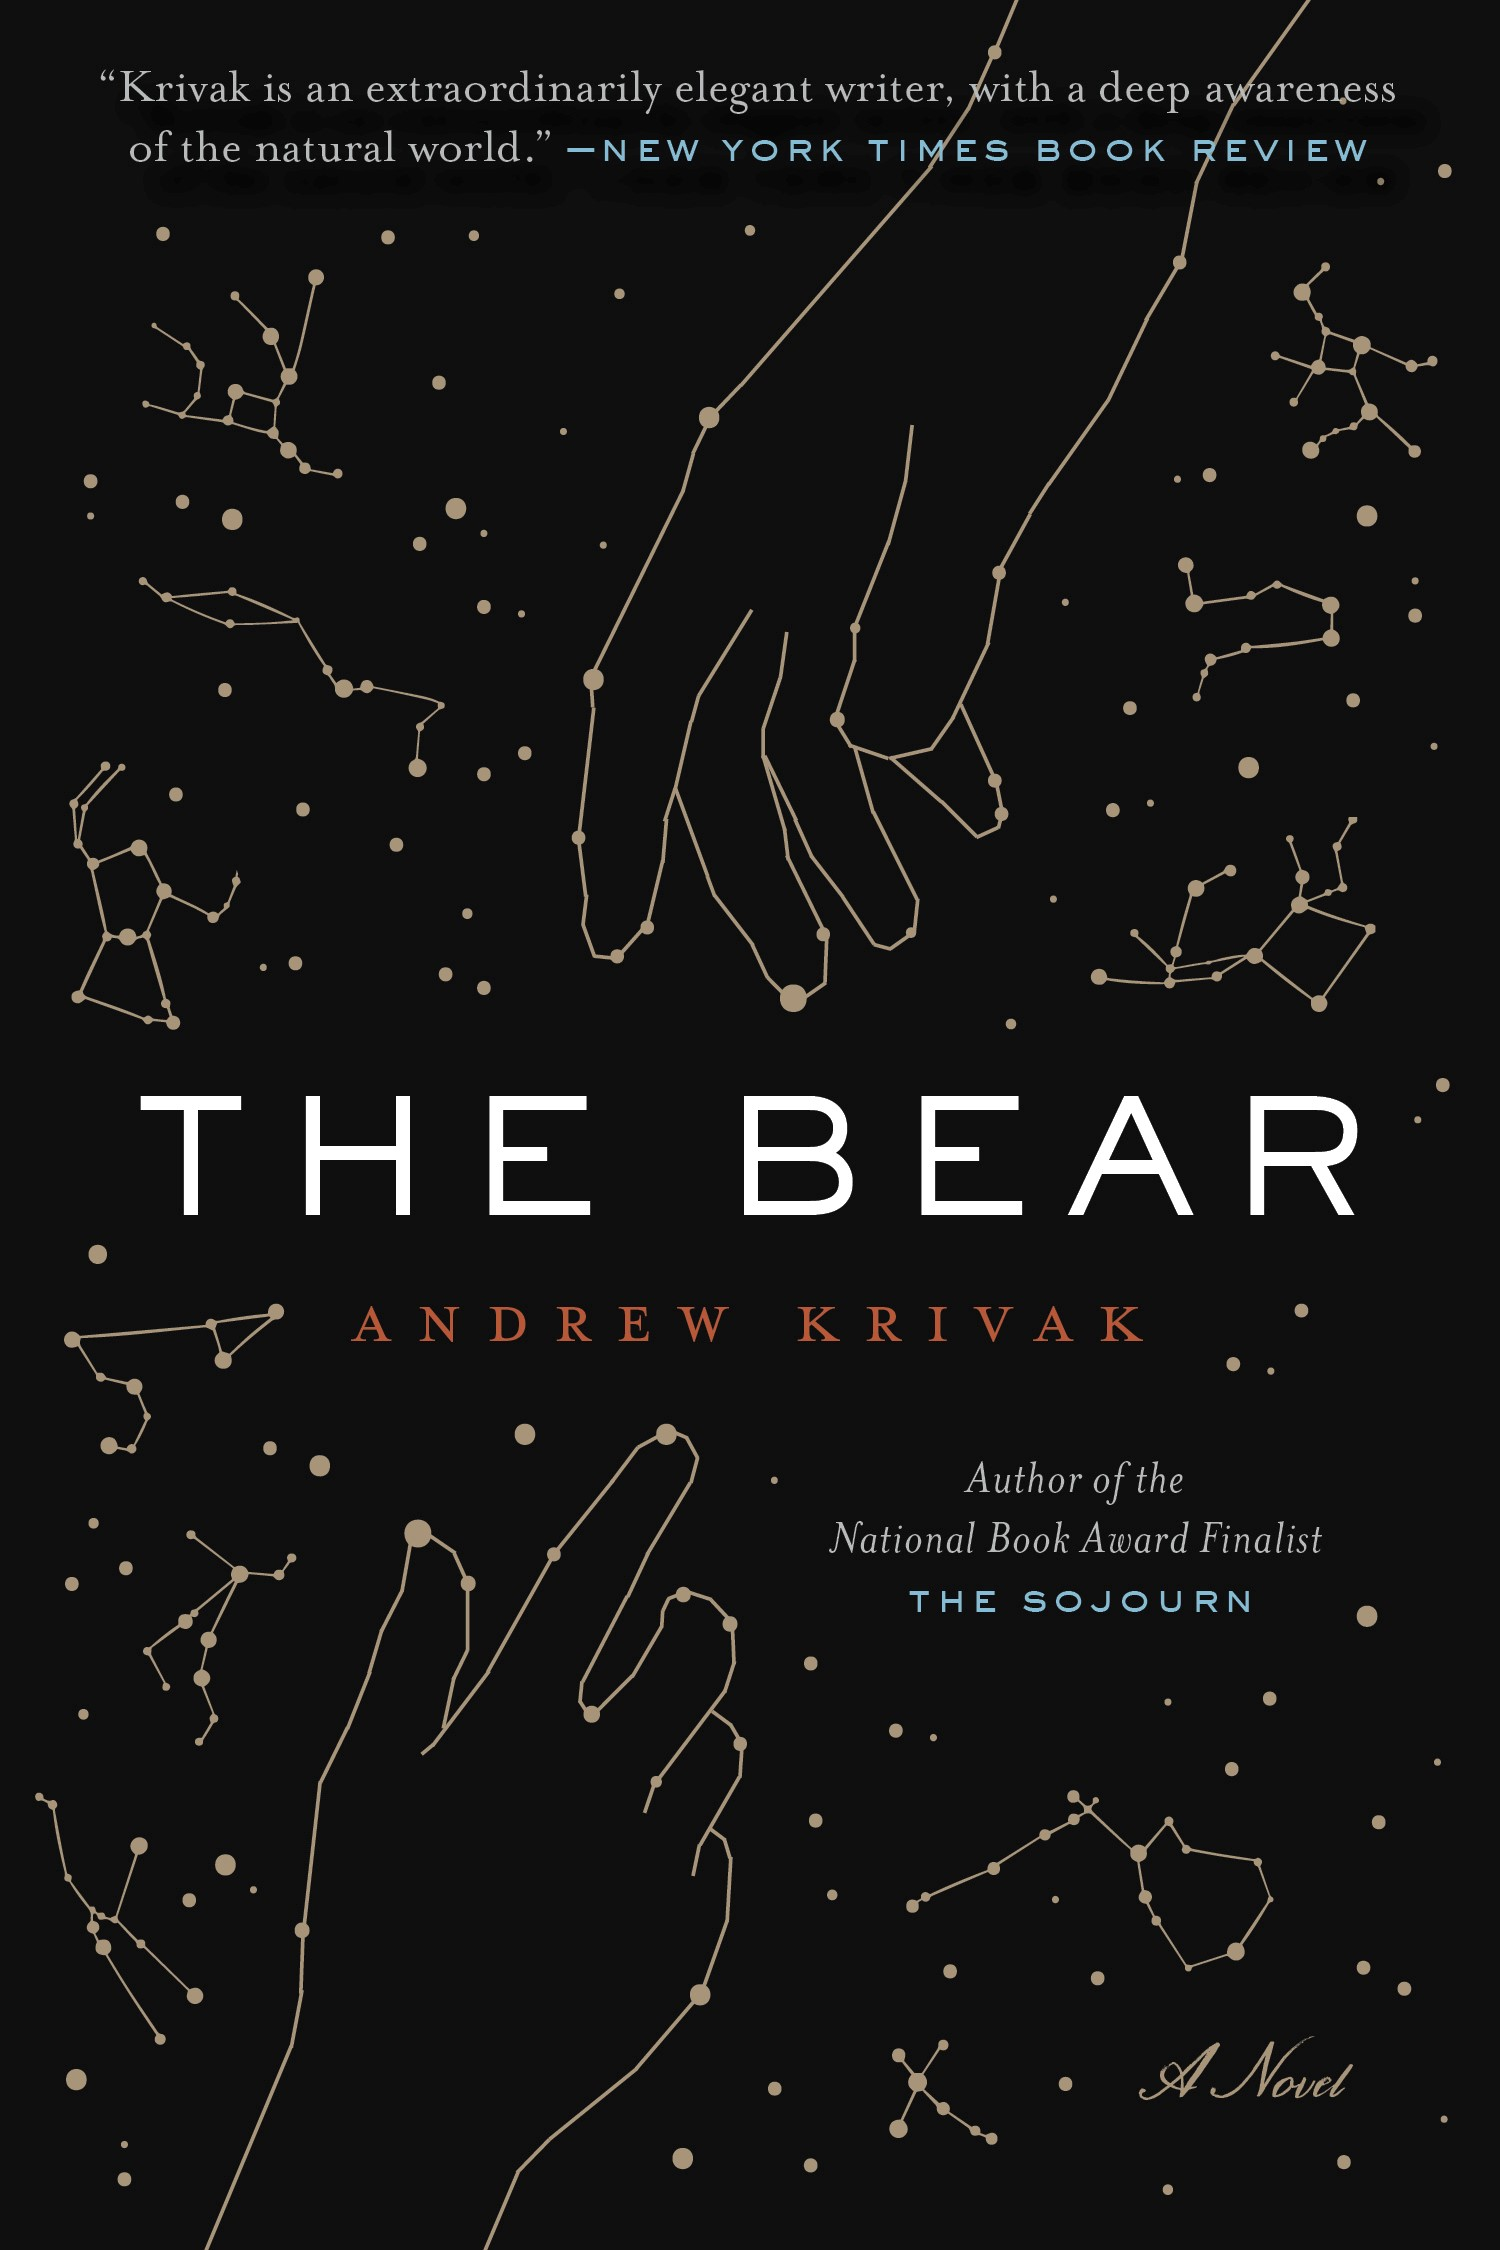 Book cover of The Bear by Andrew Krivak